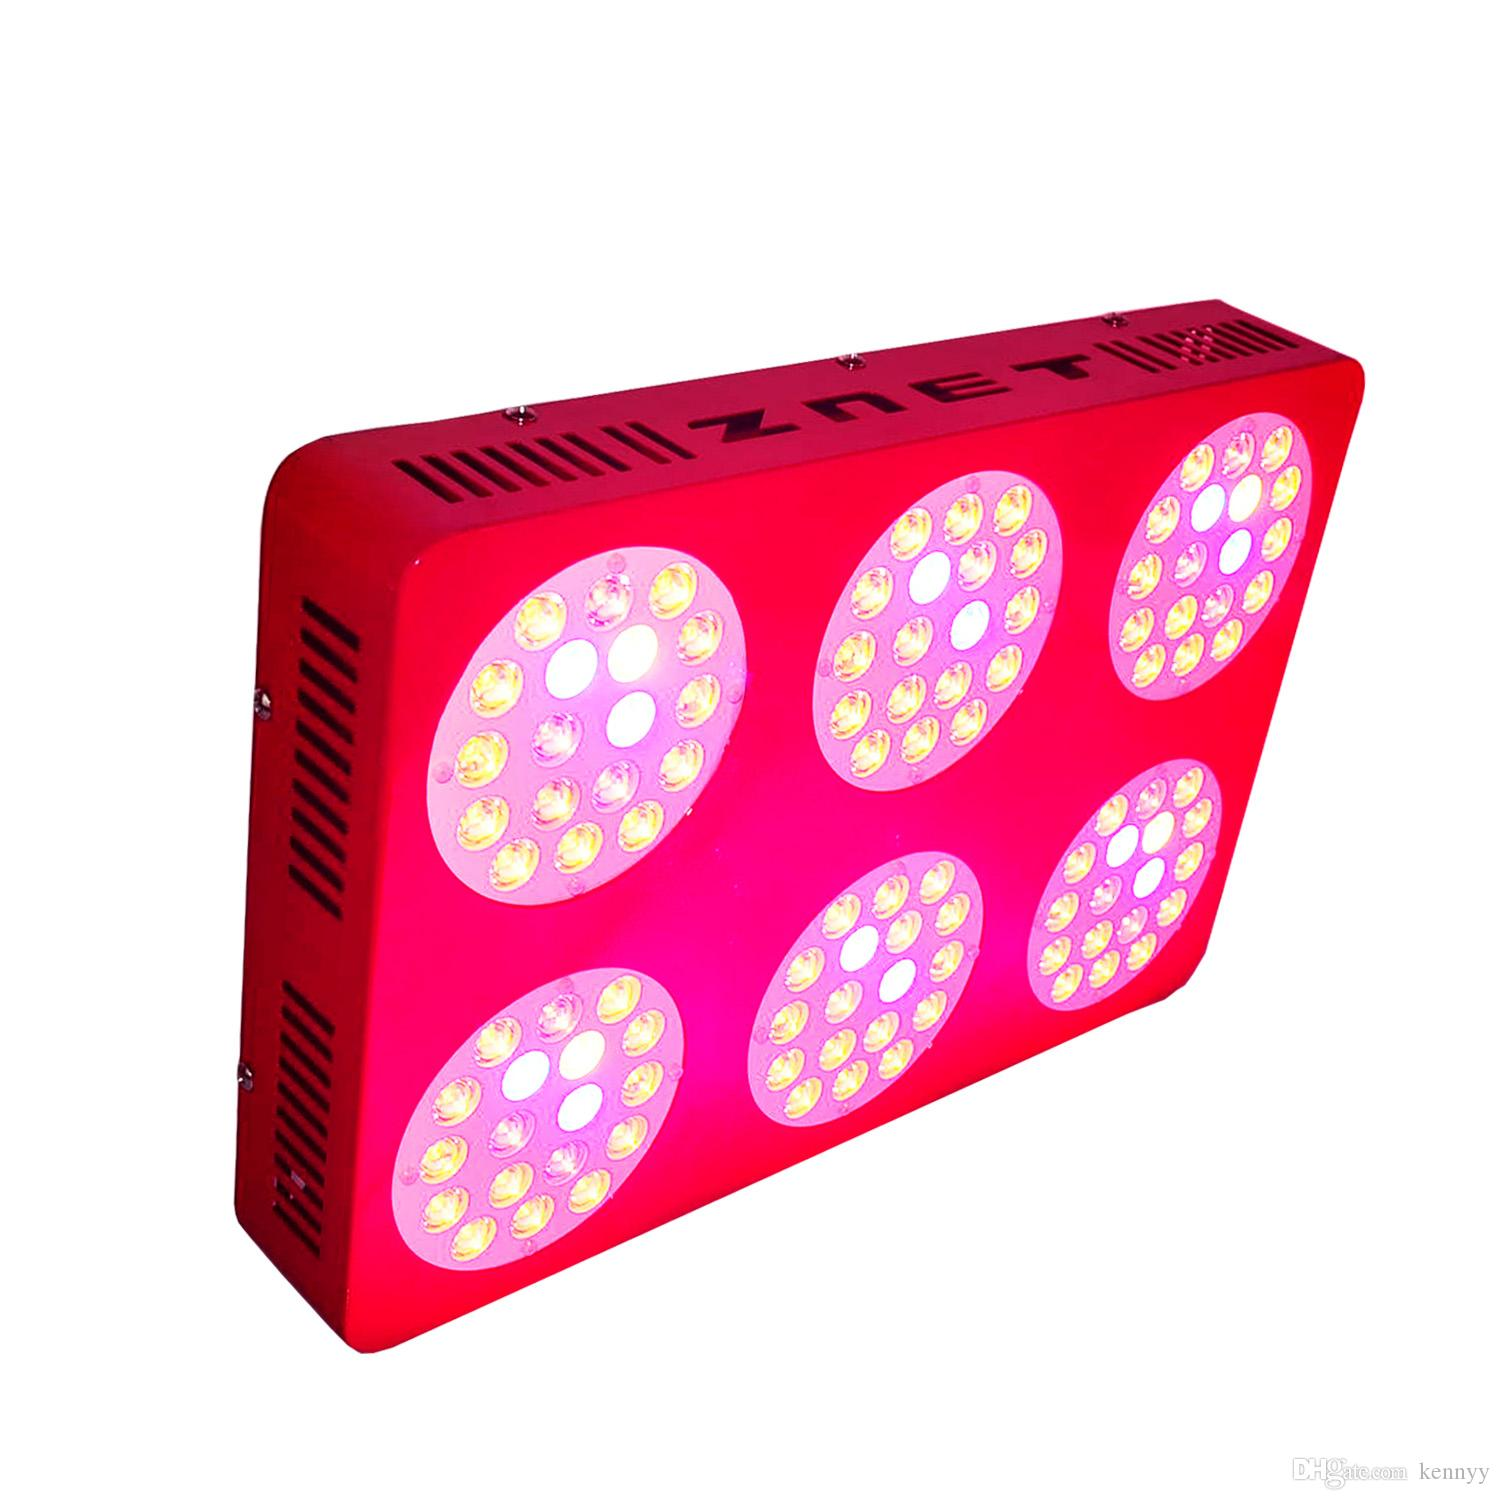 full spectrum grow light kits led grow lights indoor plants lamp for flowering and growing z108 3w 6 plant growing lights plant grow light from kennyy